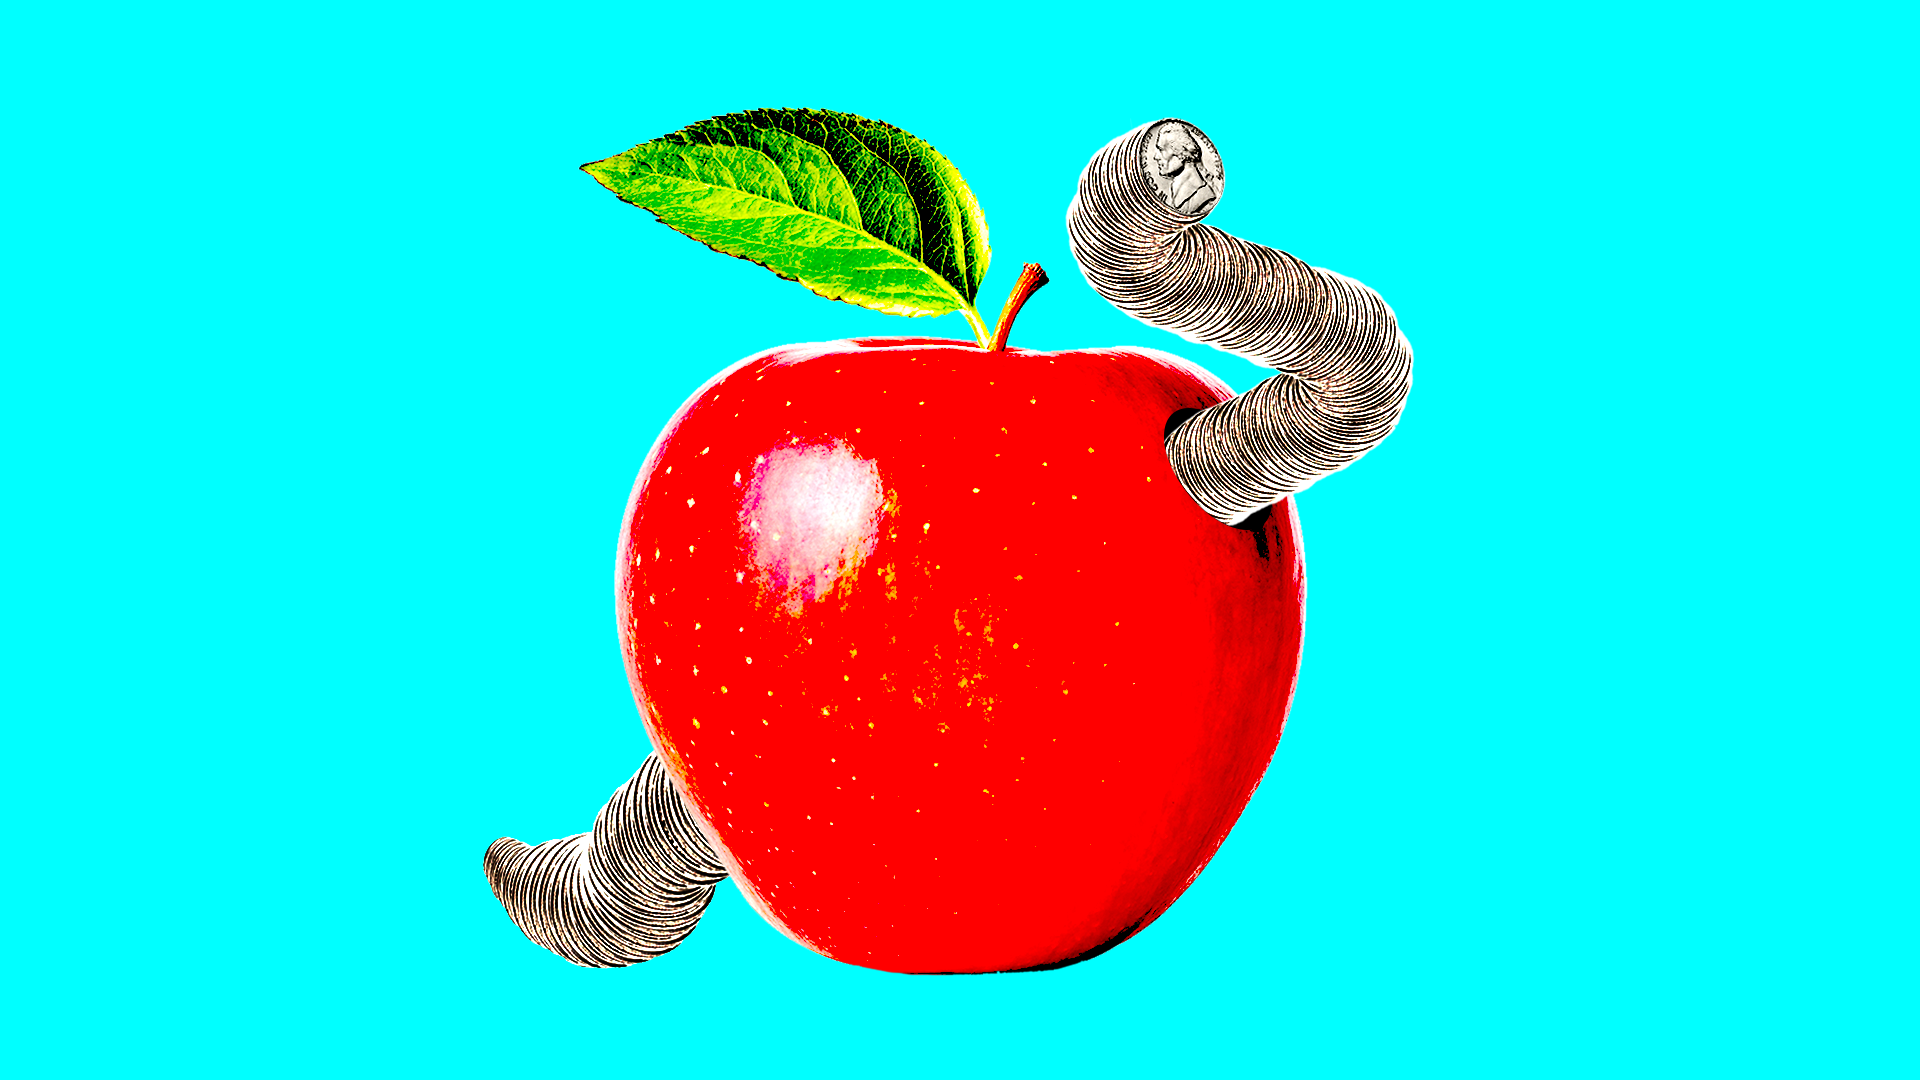 Red apple with worm in it